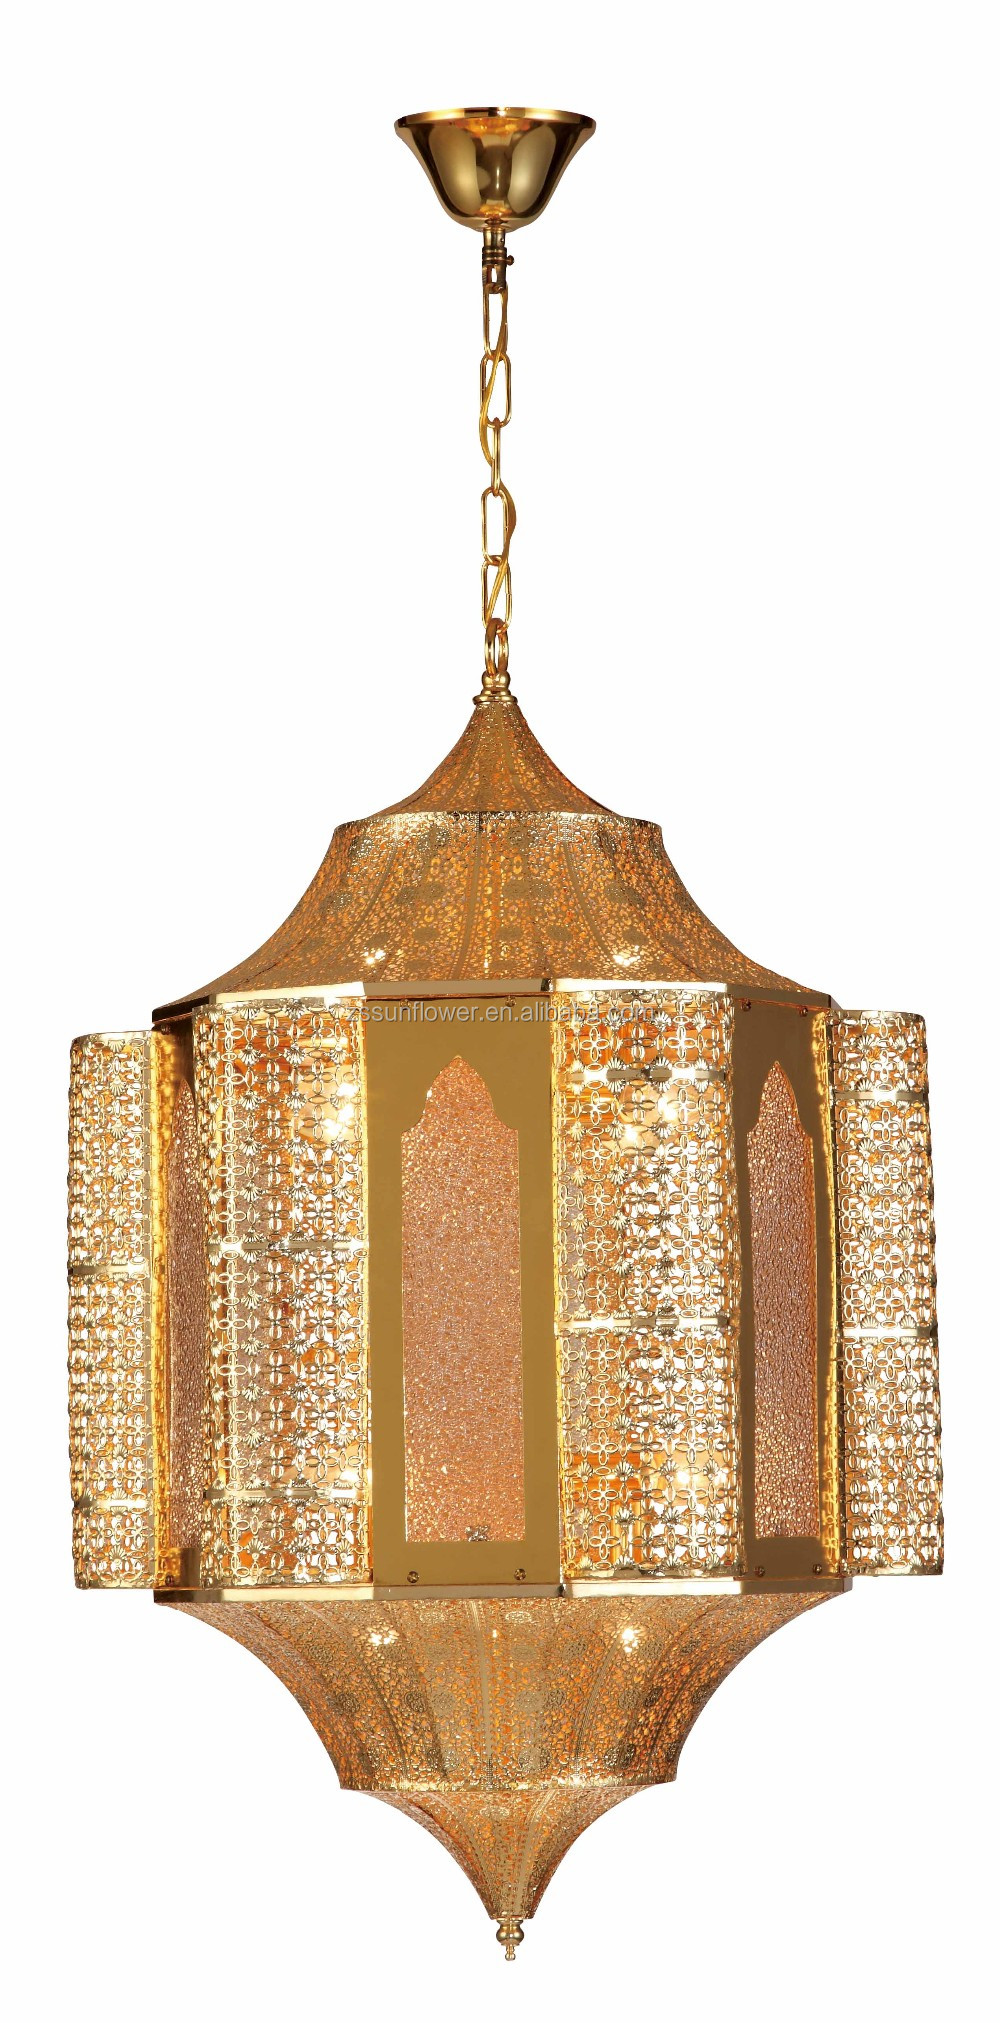 chandelier ceramic pendant carved arabic brass lamp lighting product hotel with lights gold porcelain arms antique european plated